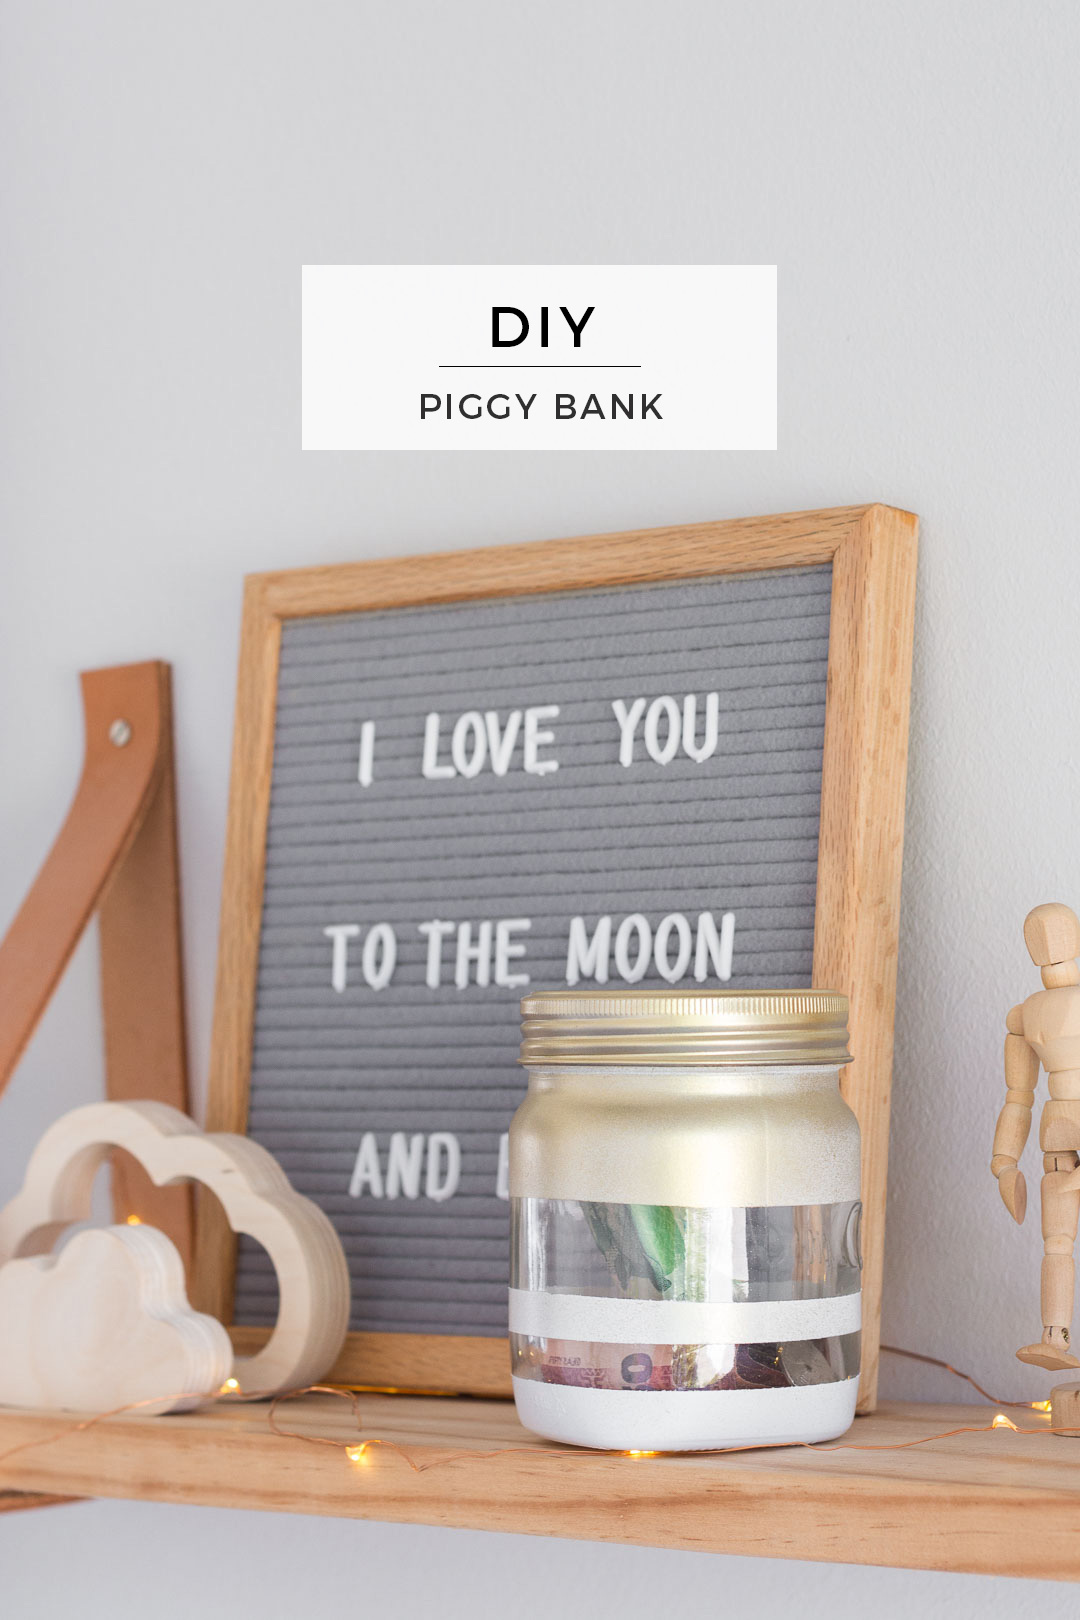 Piggy Bank DIY // Start teaching your child to save with an easy kids craft